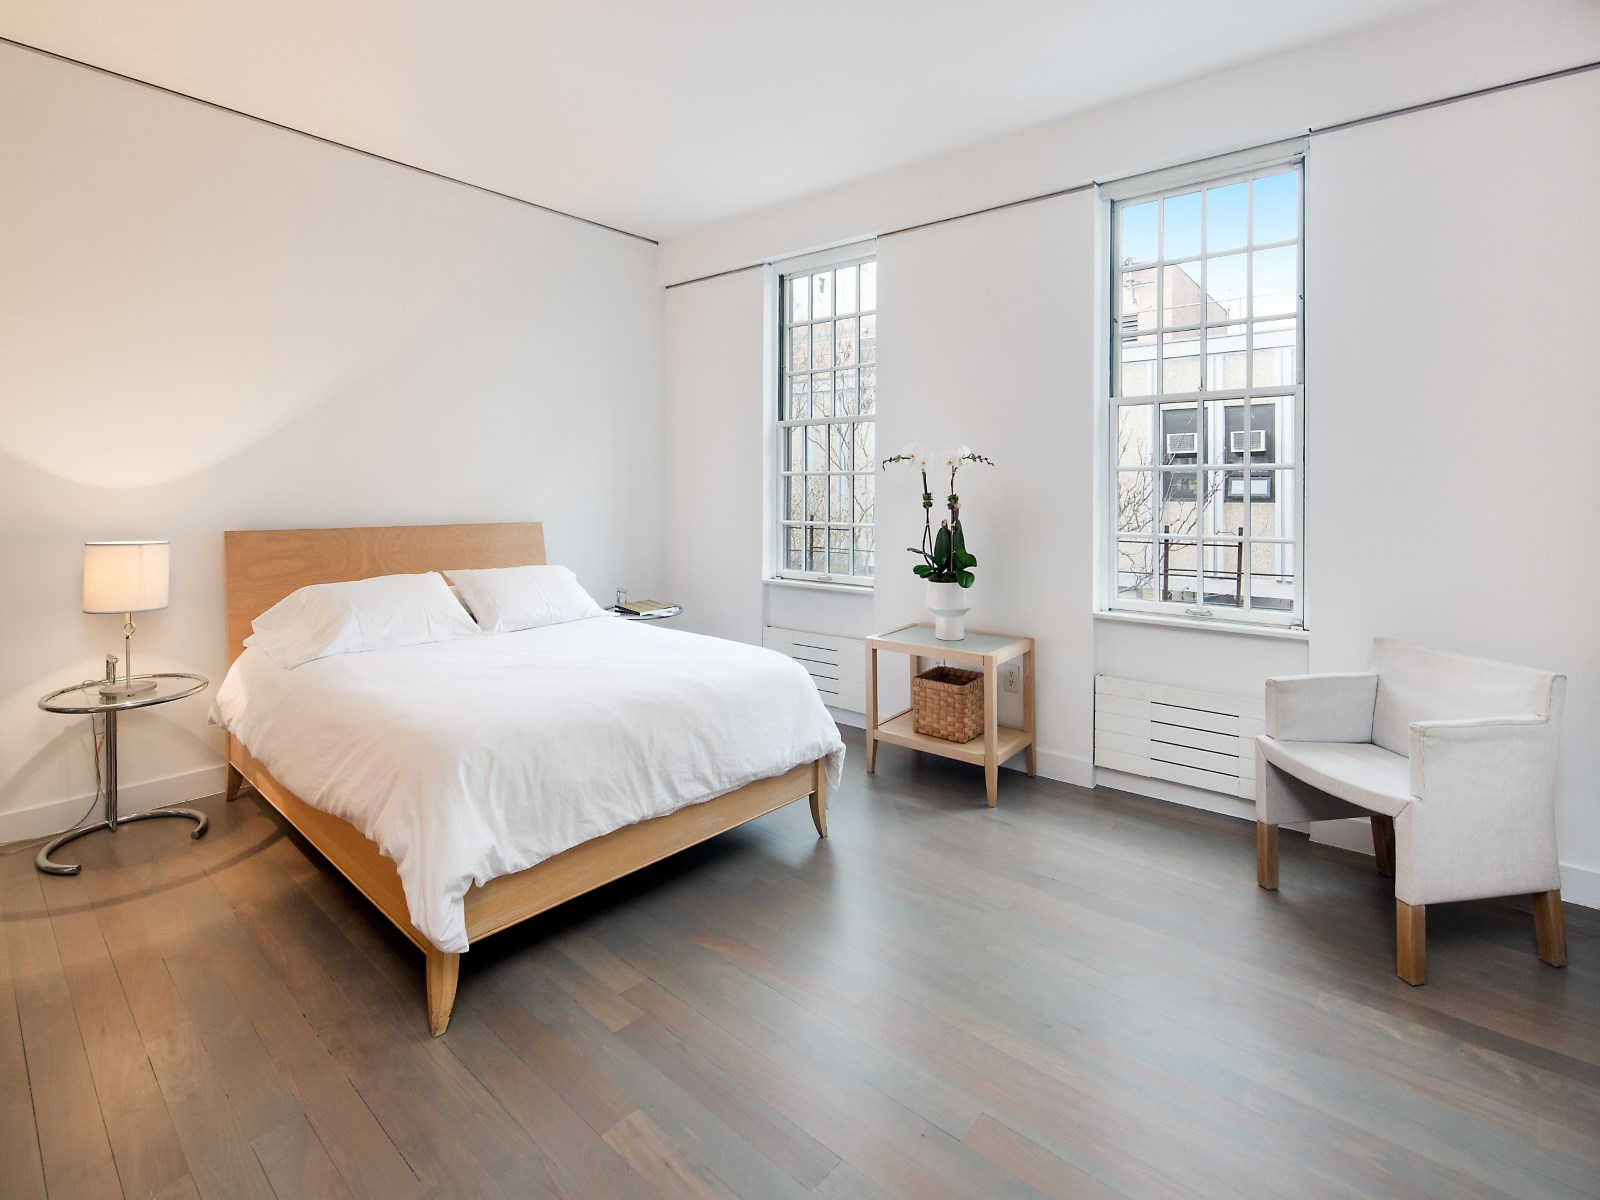 230 West 10th Street, Cool Listings, Historic Homes, carriage house, townhouse, Greenwich Village, Jean Lignel, Art Collector, Jeffrey Flanigan, Keith Haring, Warhol, Ida Applebroog, Manhattan townhouse for sale